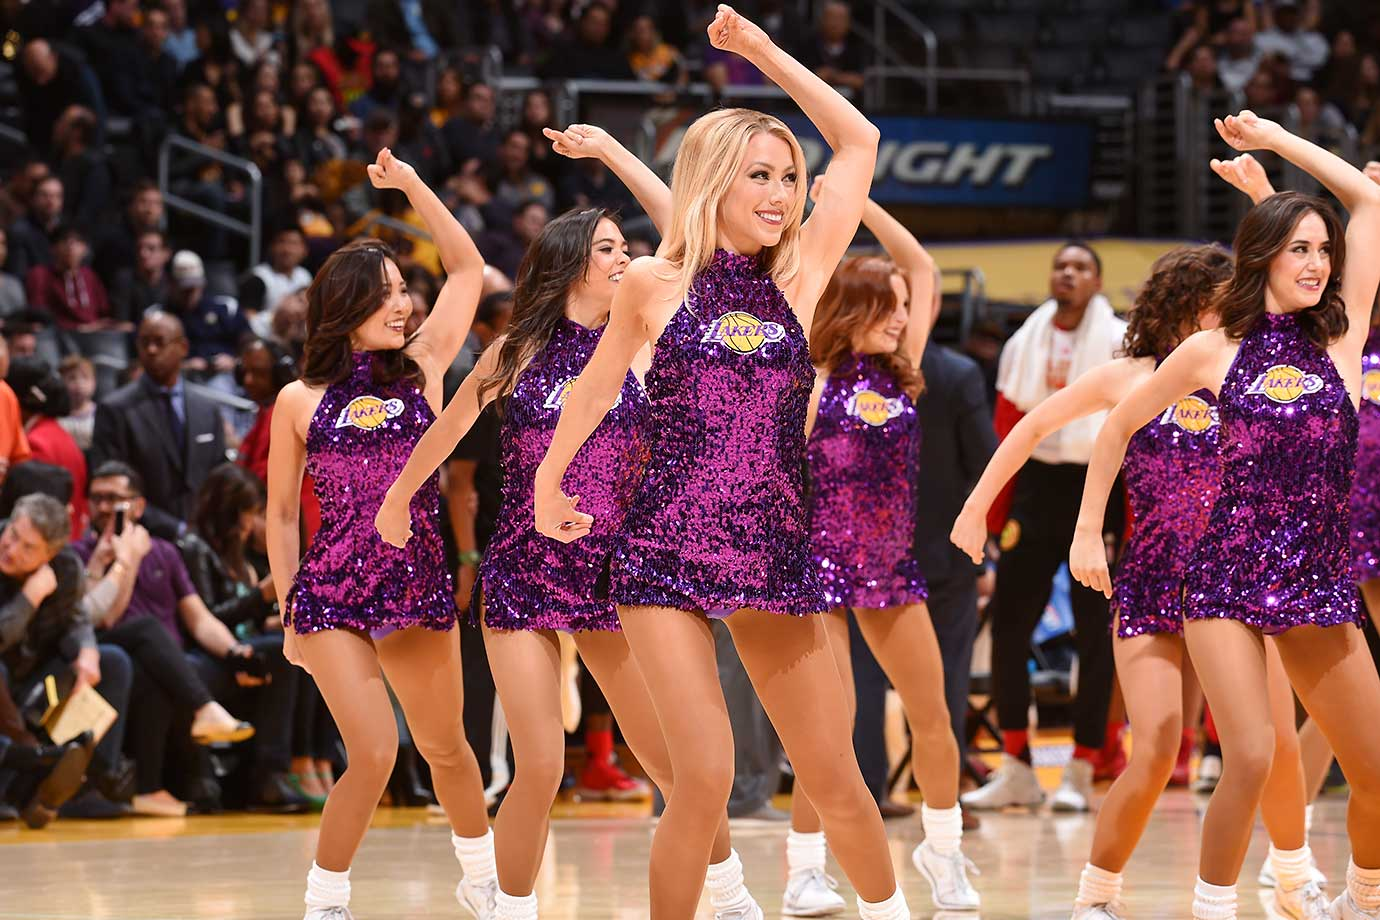 The Los Angeles Lakers dance team is seen during the game against the Atlanta Hawks.